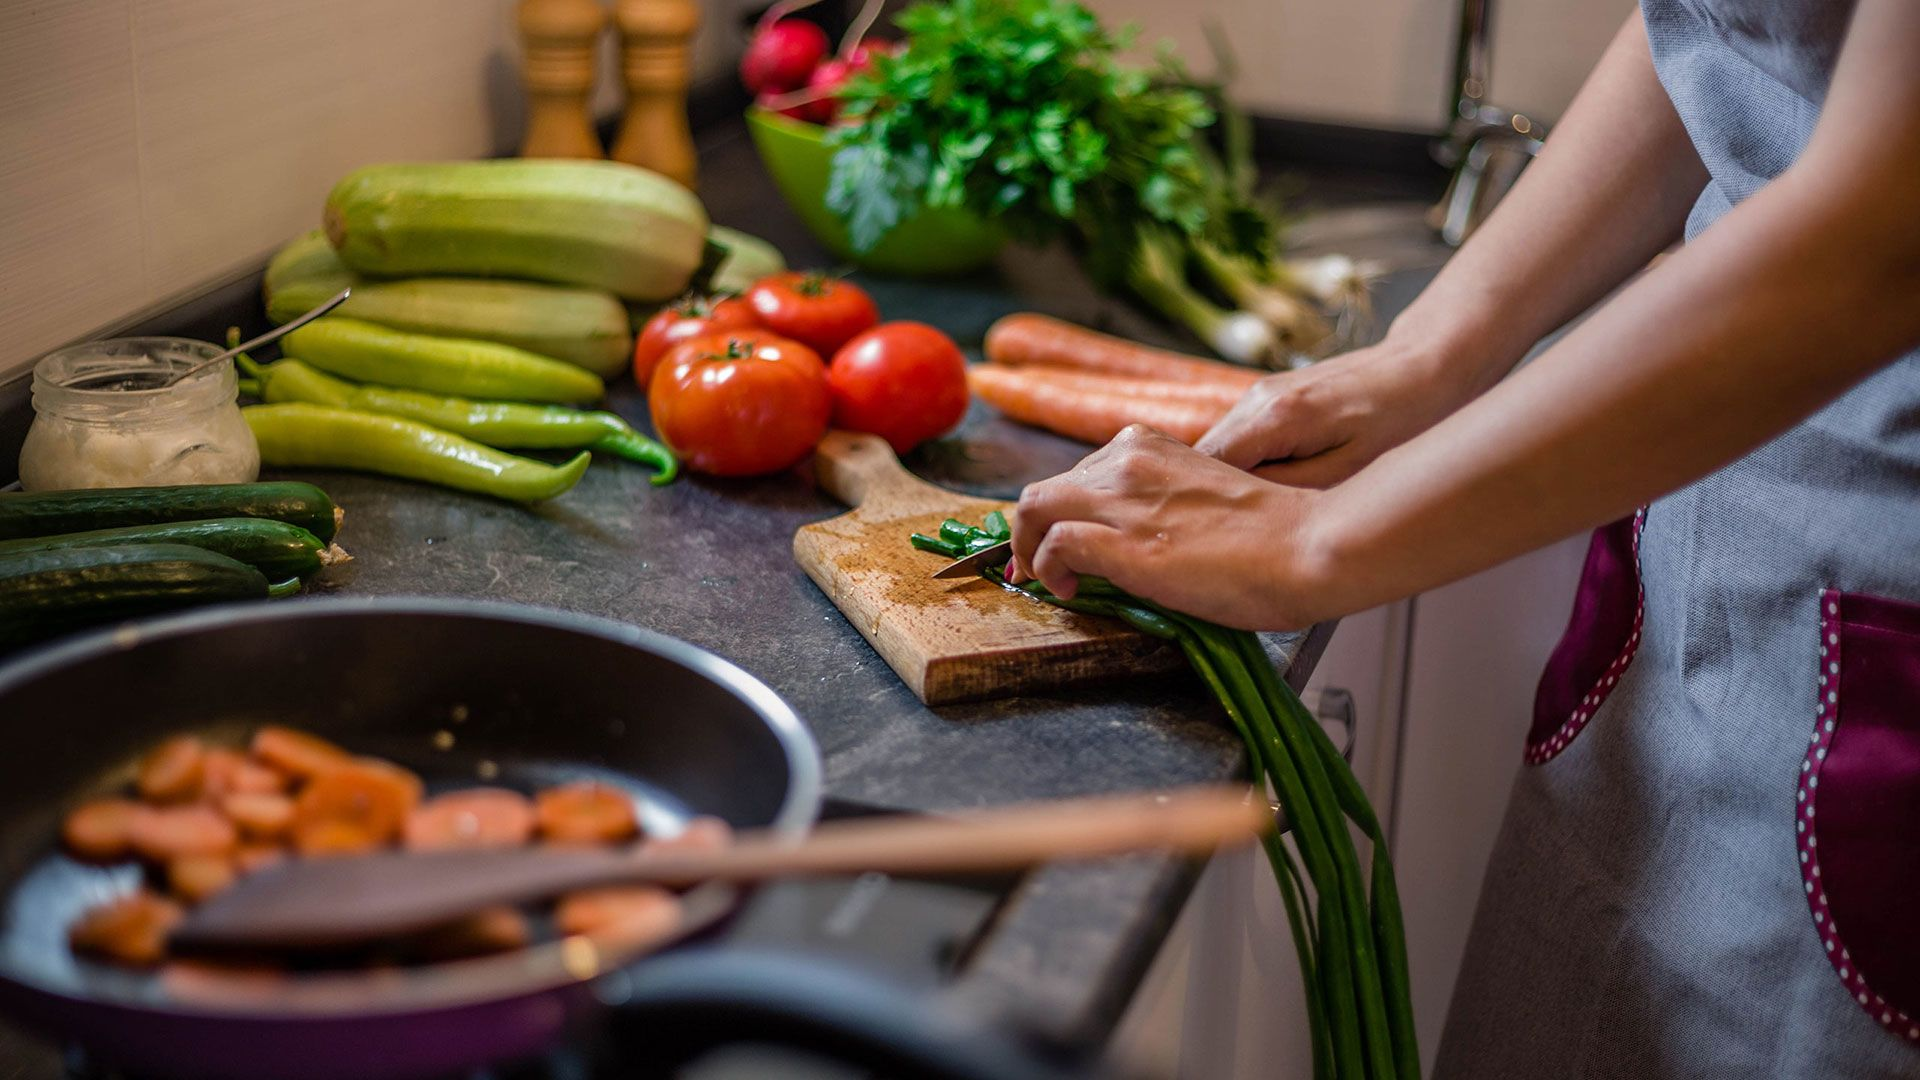 11 Ways to Make Over Your Kitchen for Weight Loss